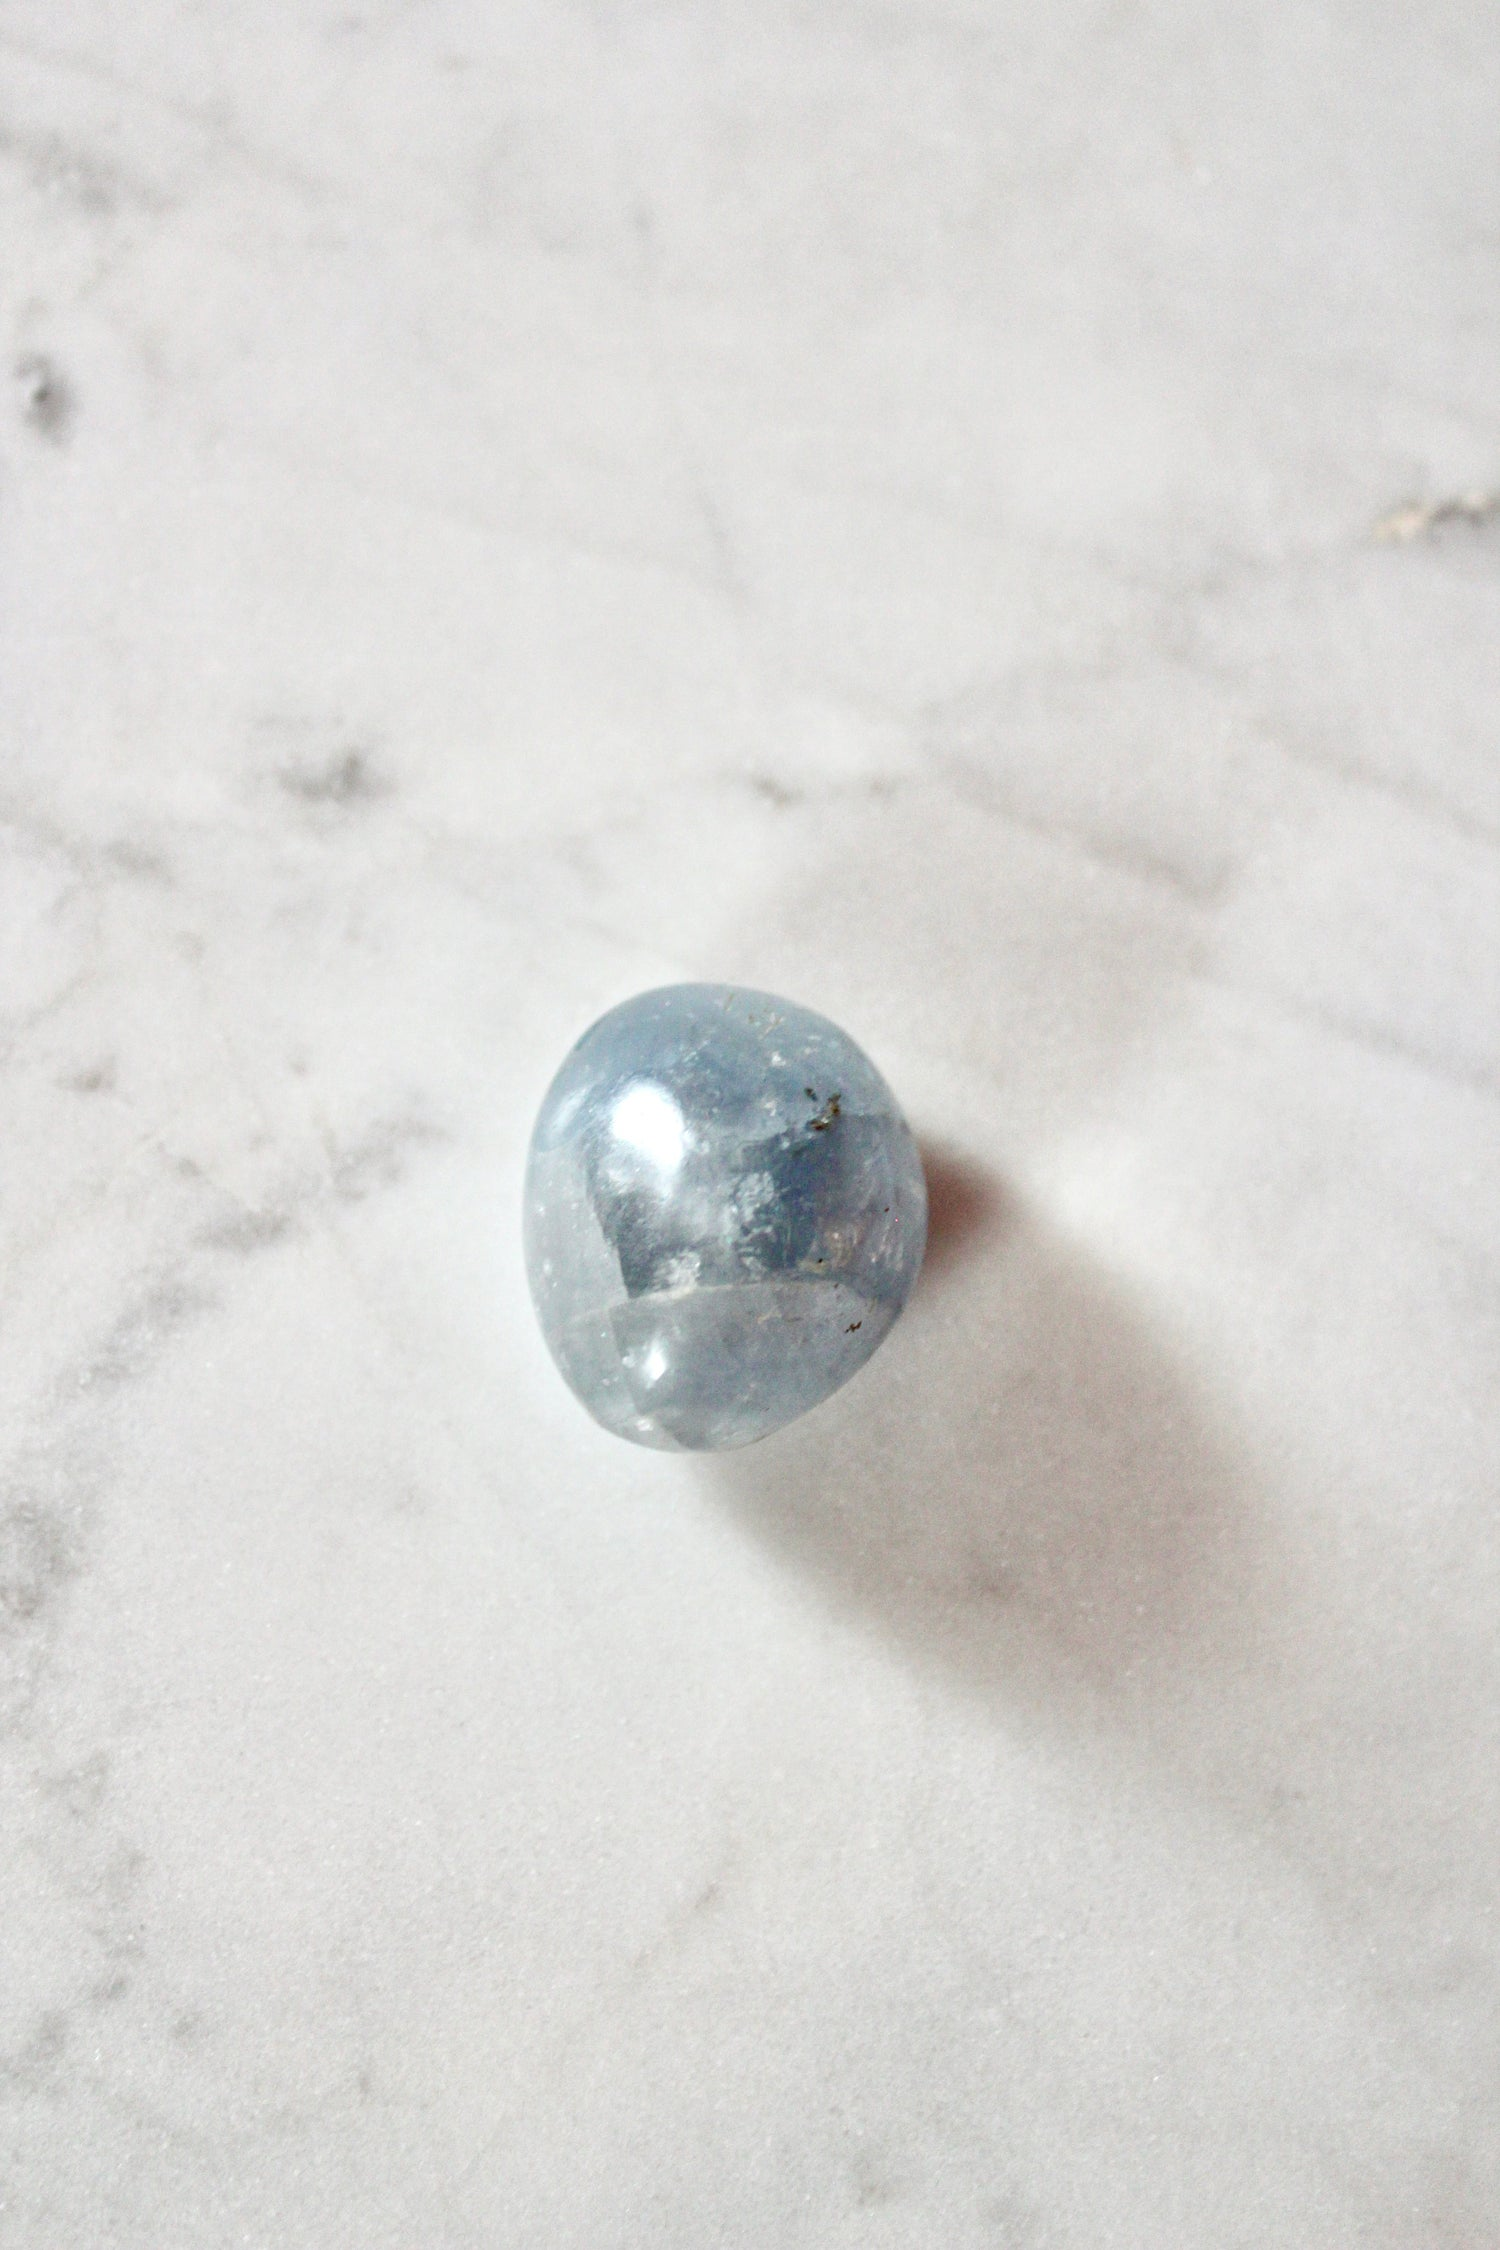 Image of Celestite Crystal